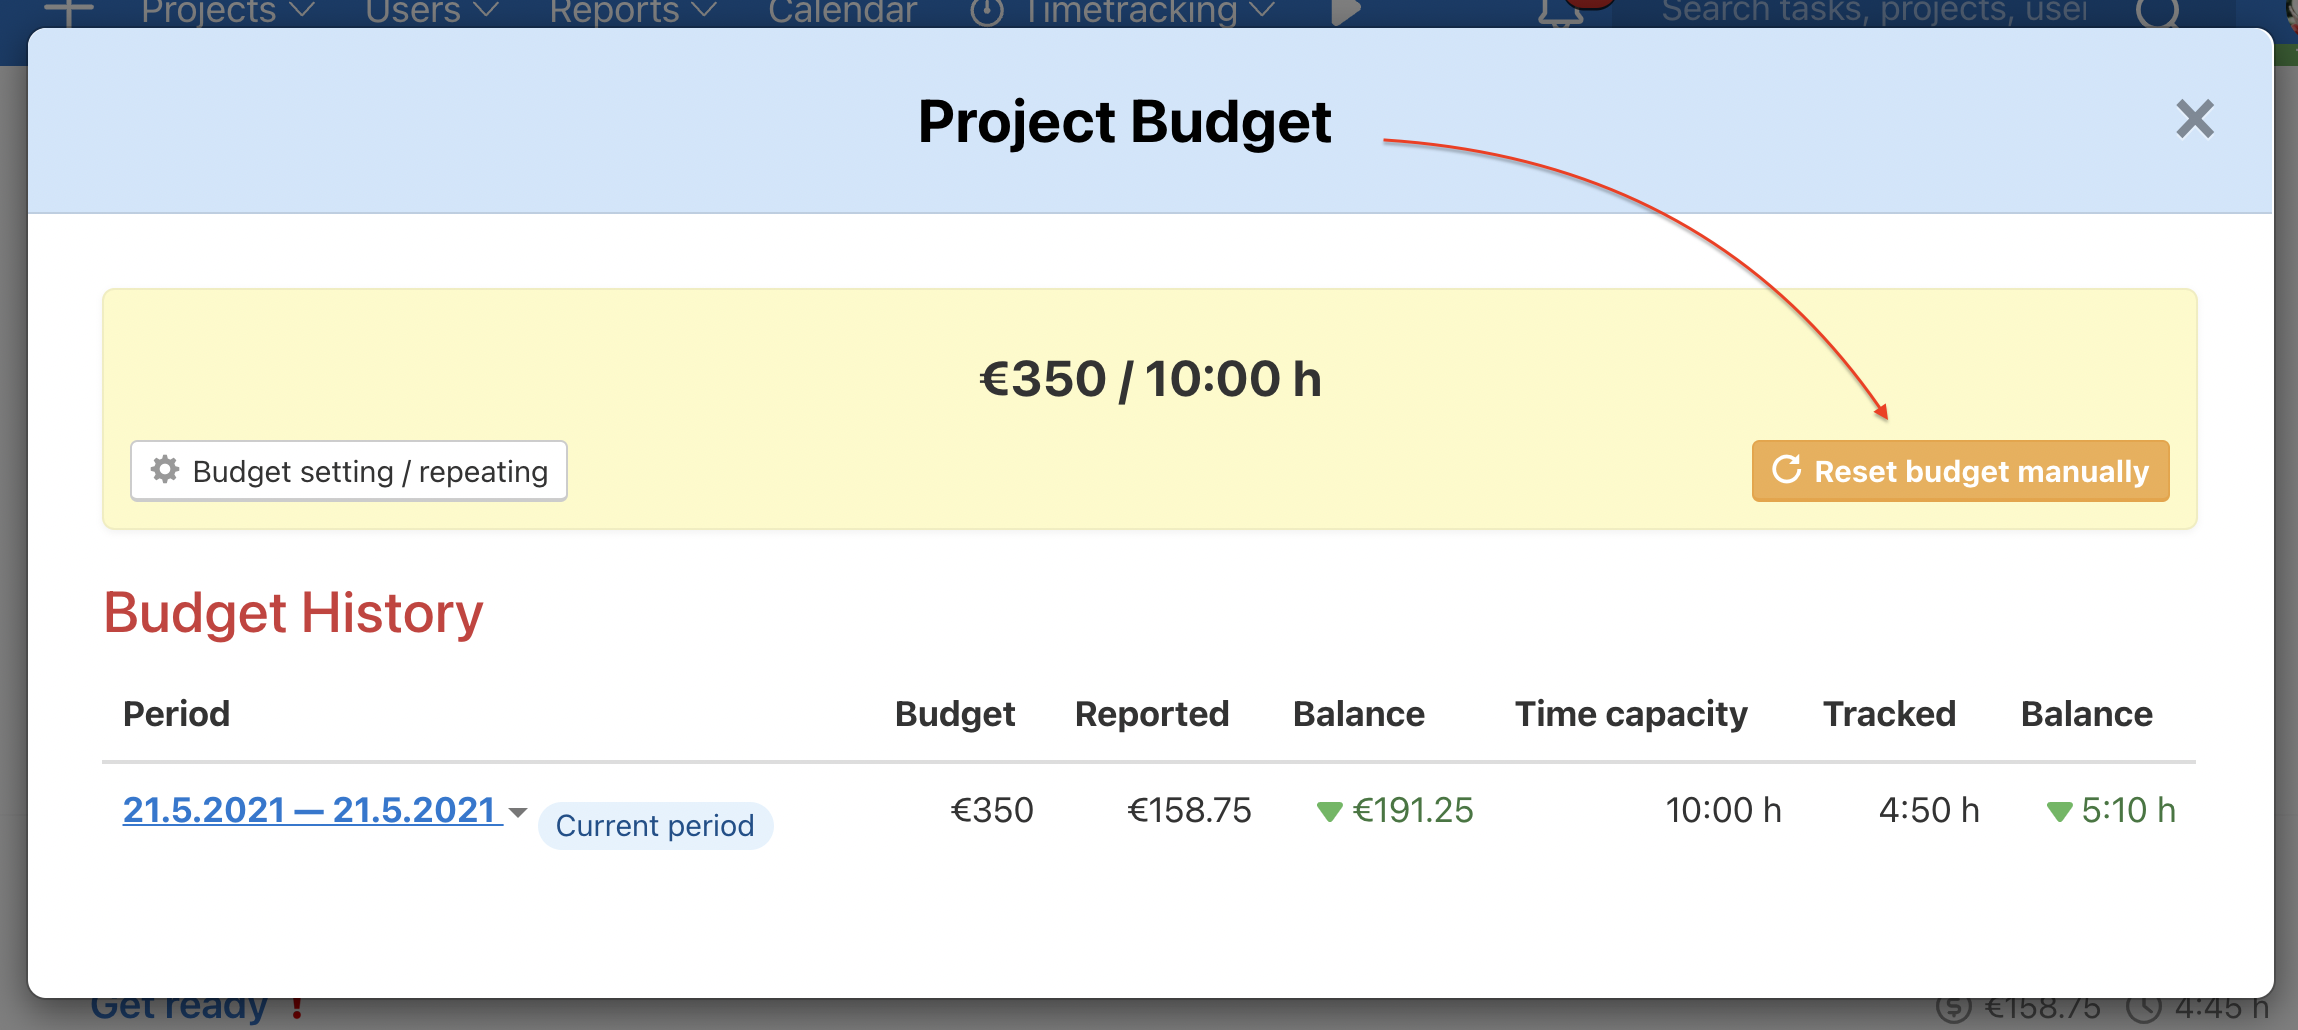 How to reset project budget manually.